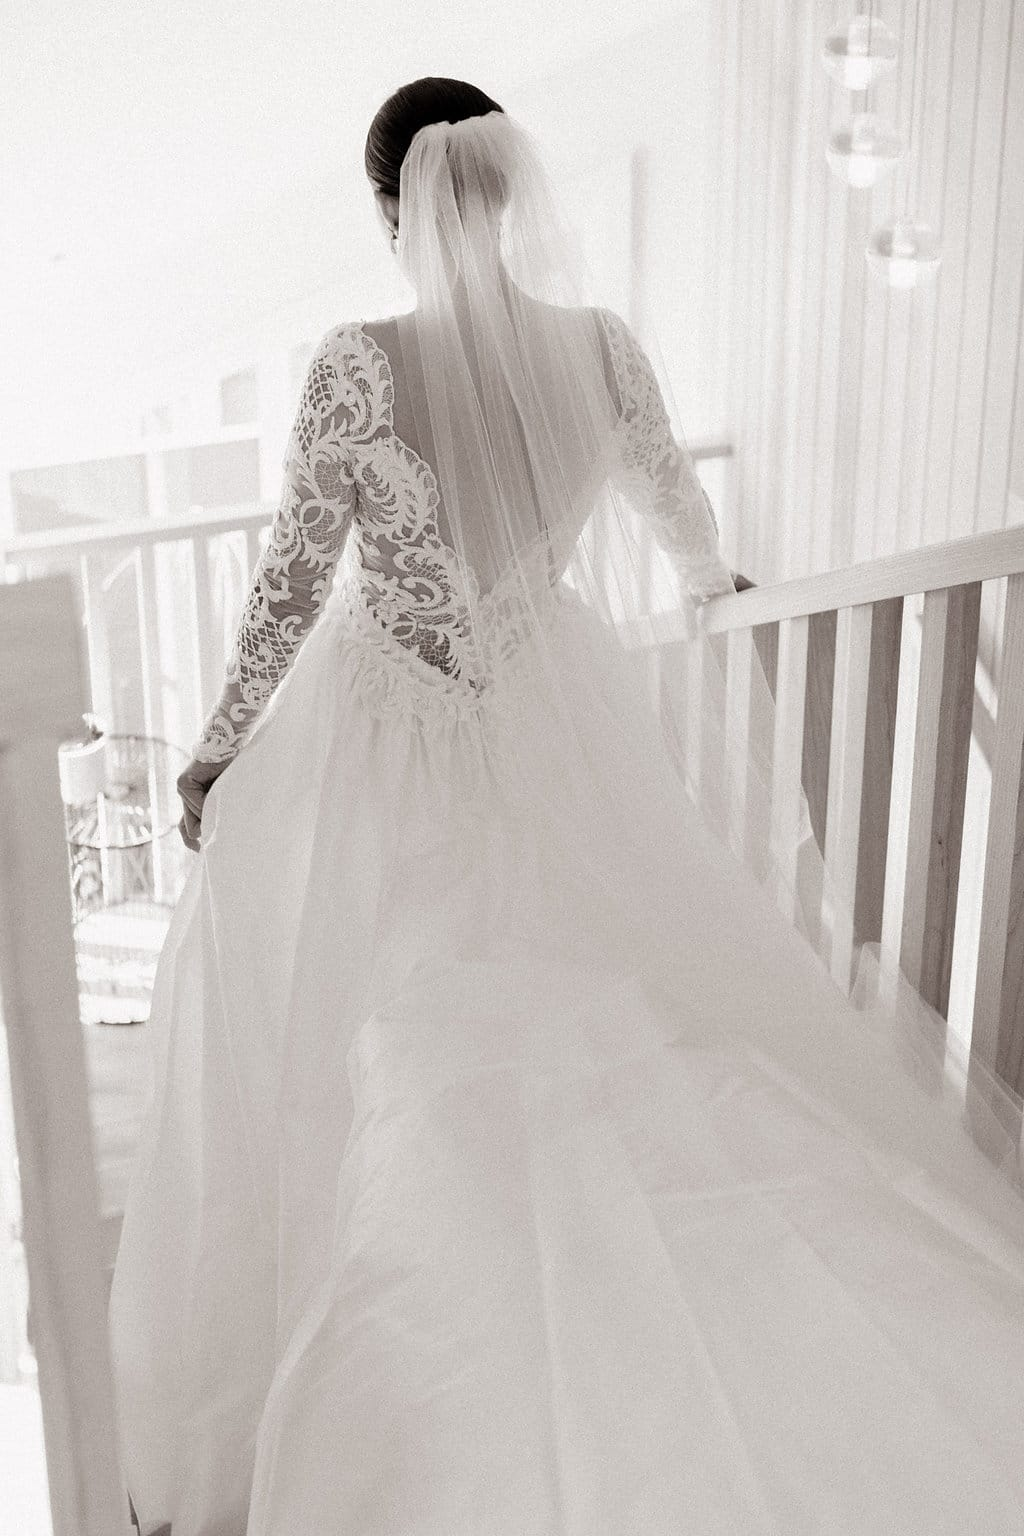 Real Weddings | Vinka Design | Real Brides Wearing Vinka Gowns | Olivia and Ben - Olivia walking down stairs with dramatic silk train flowing behind her in black and white